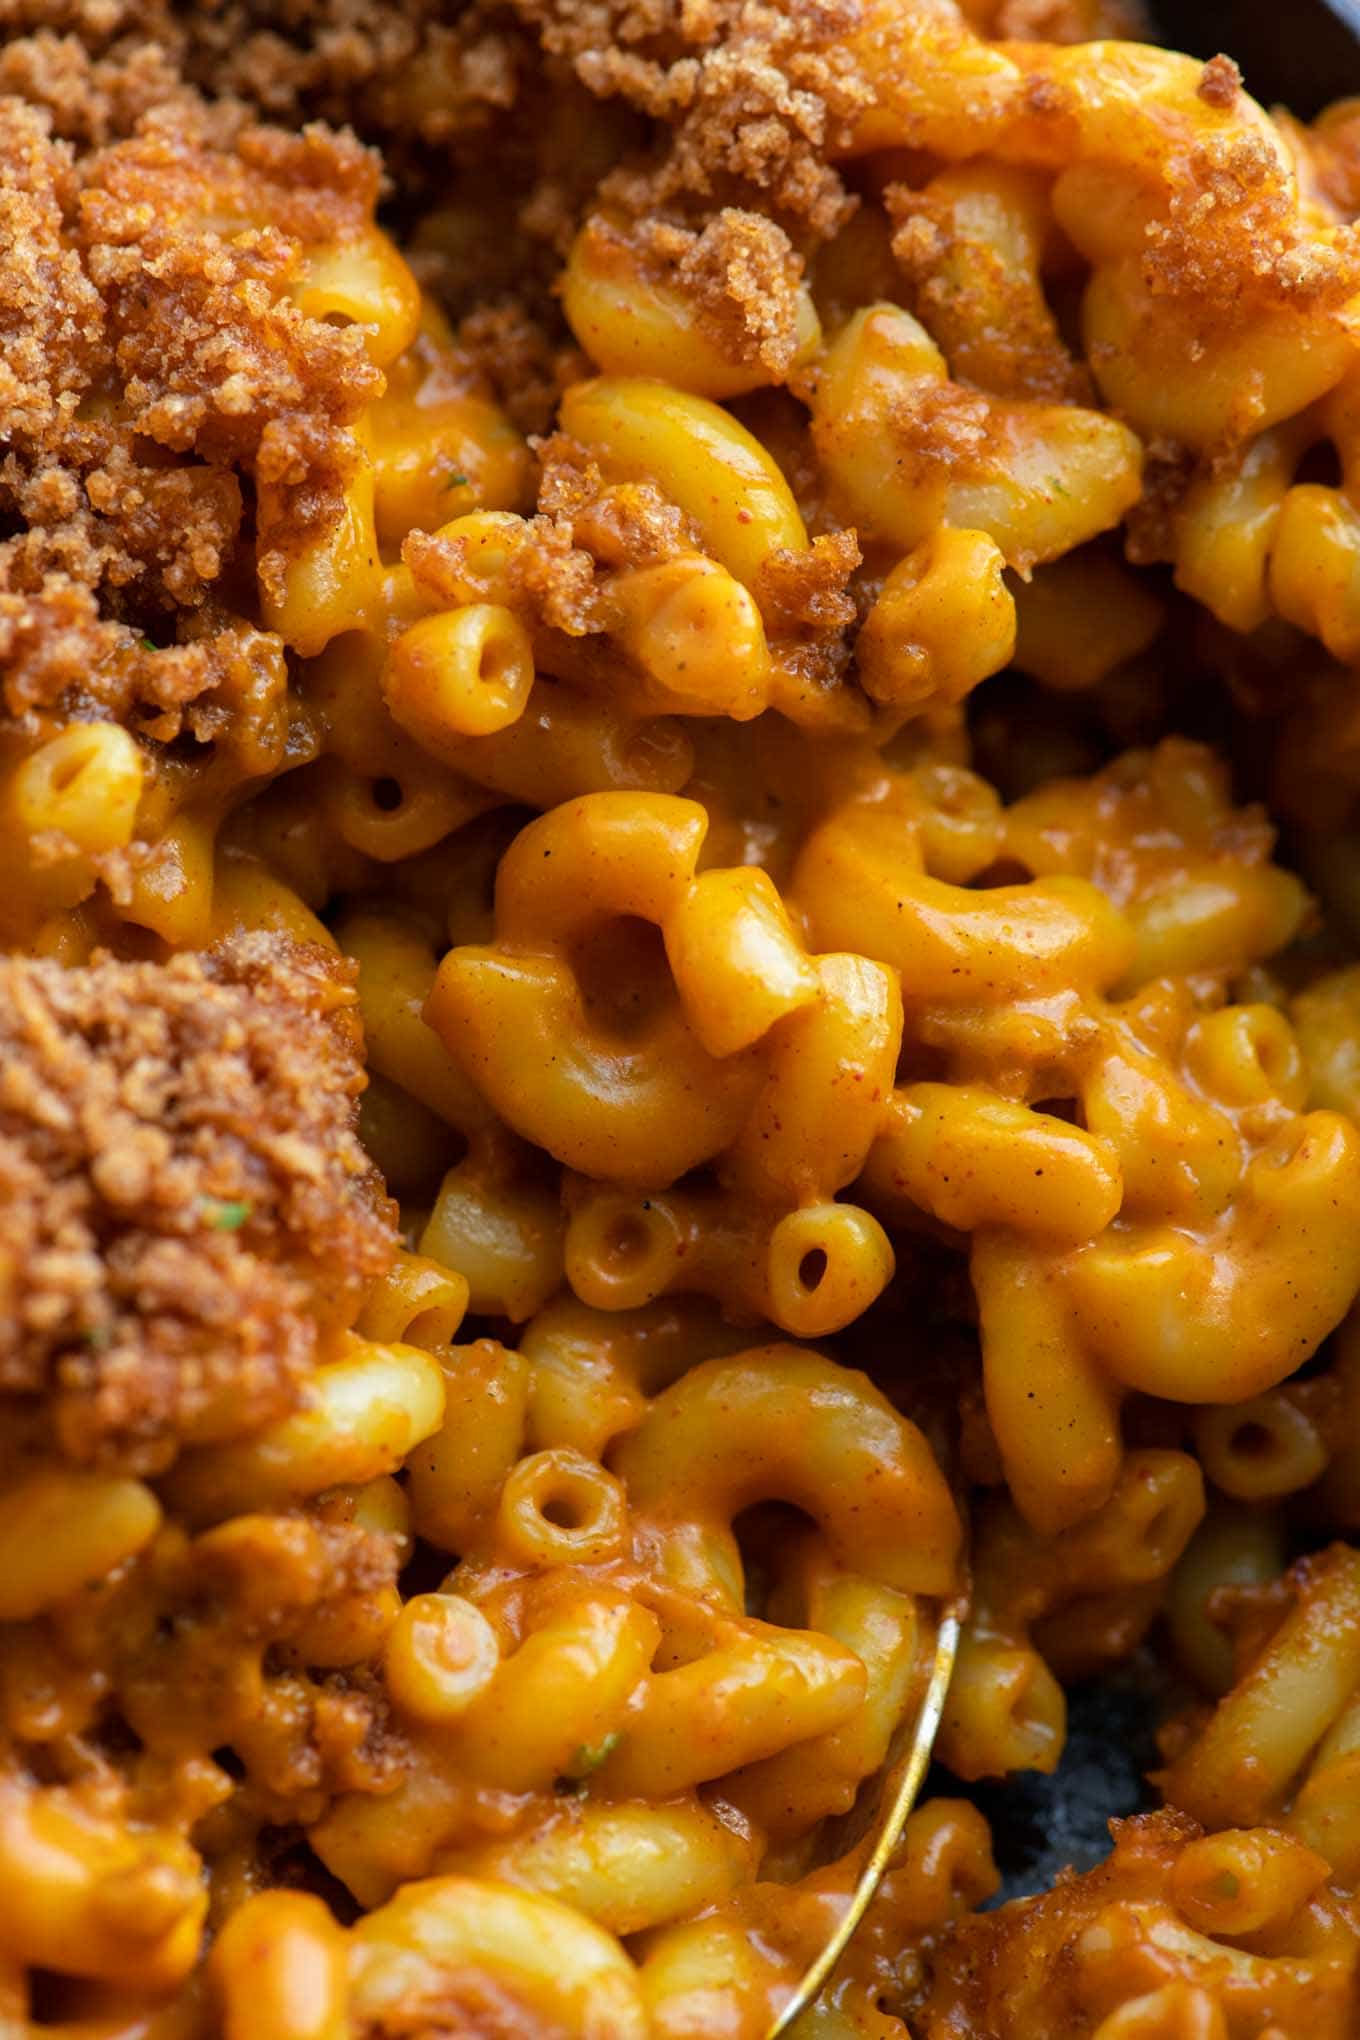 close up of the mac and cheese with some of the injera crumb topping showing